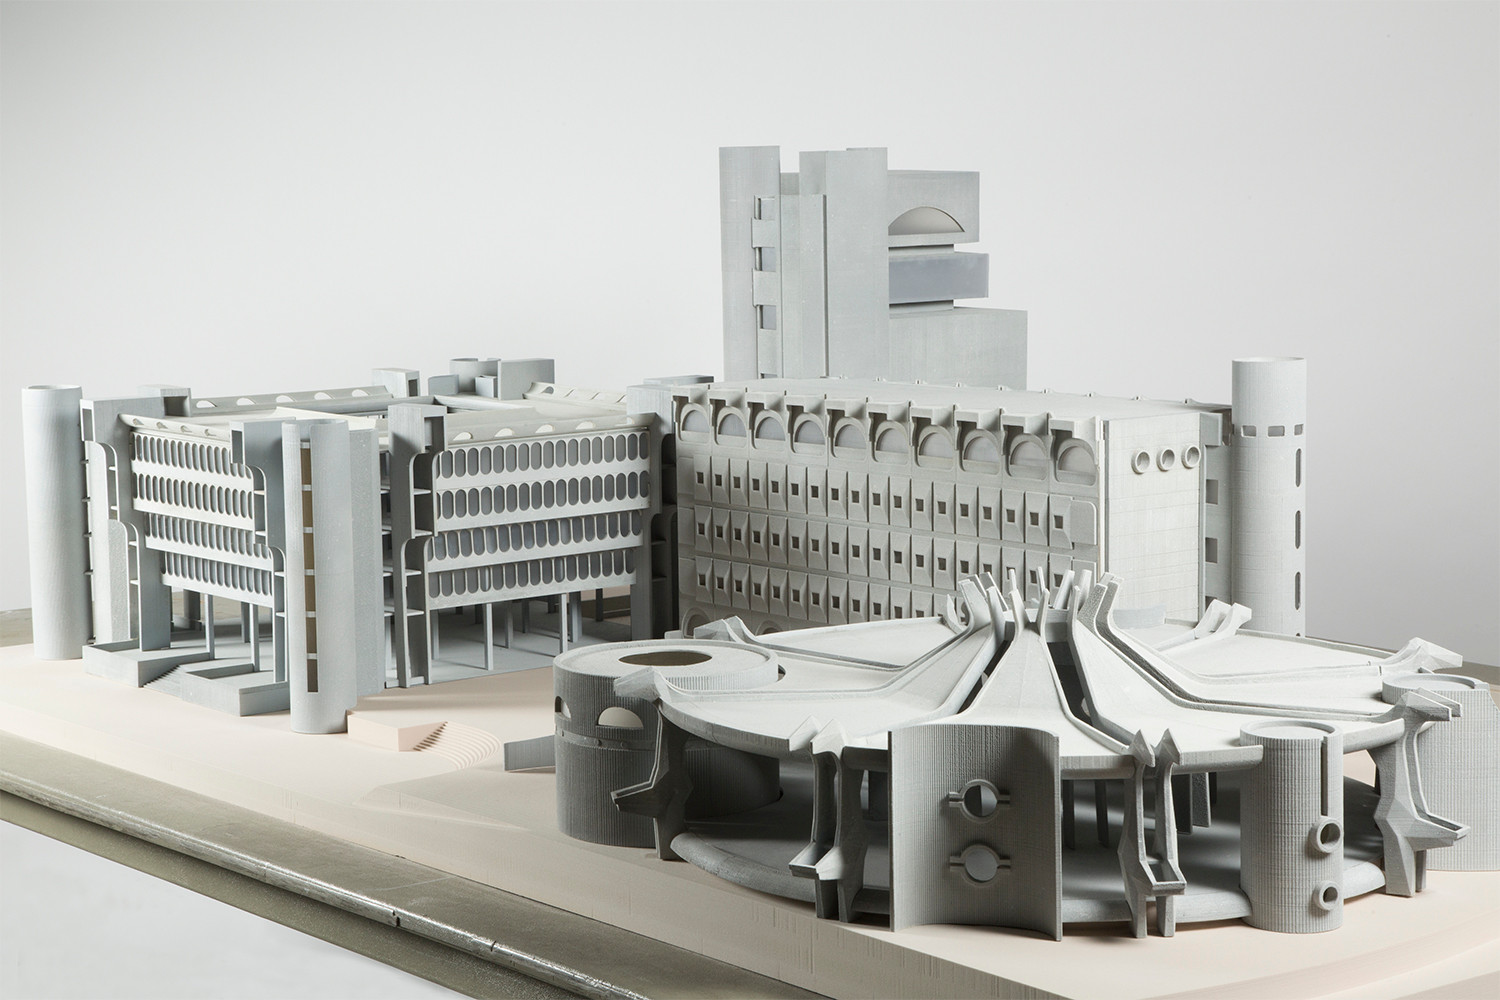 3D printed architectural model for MoMa